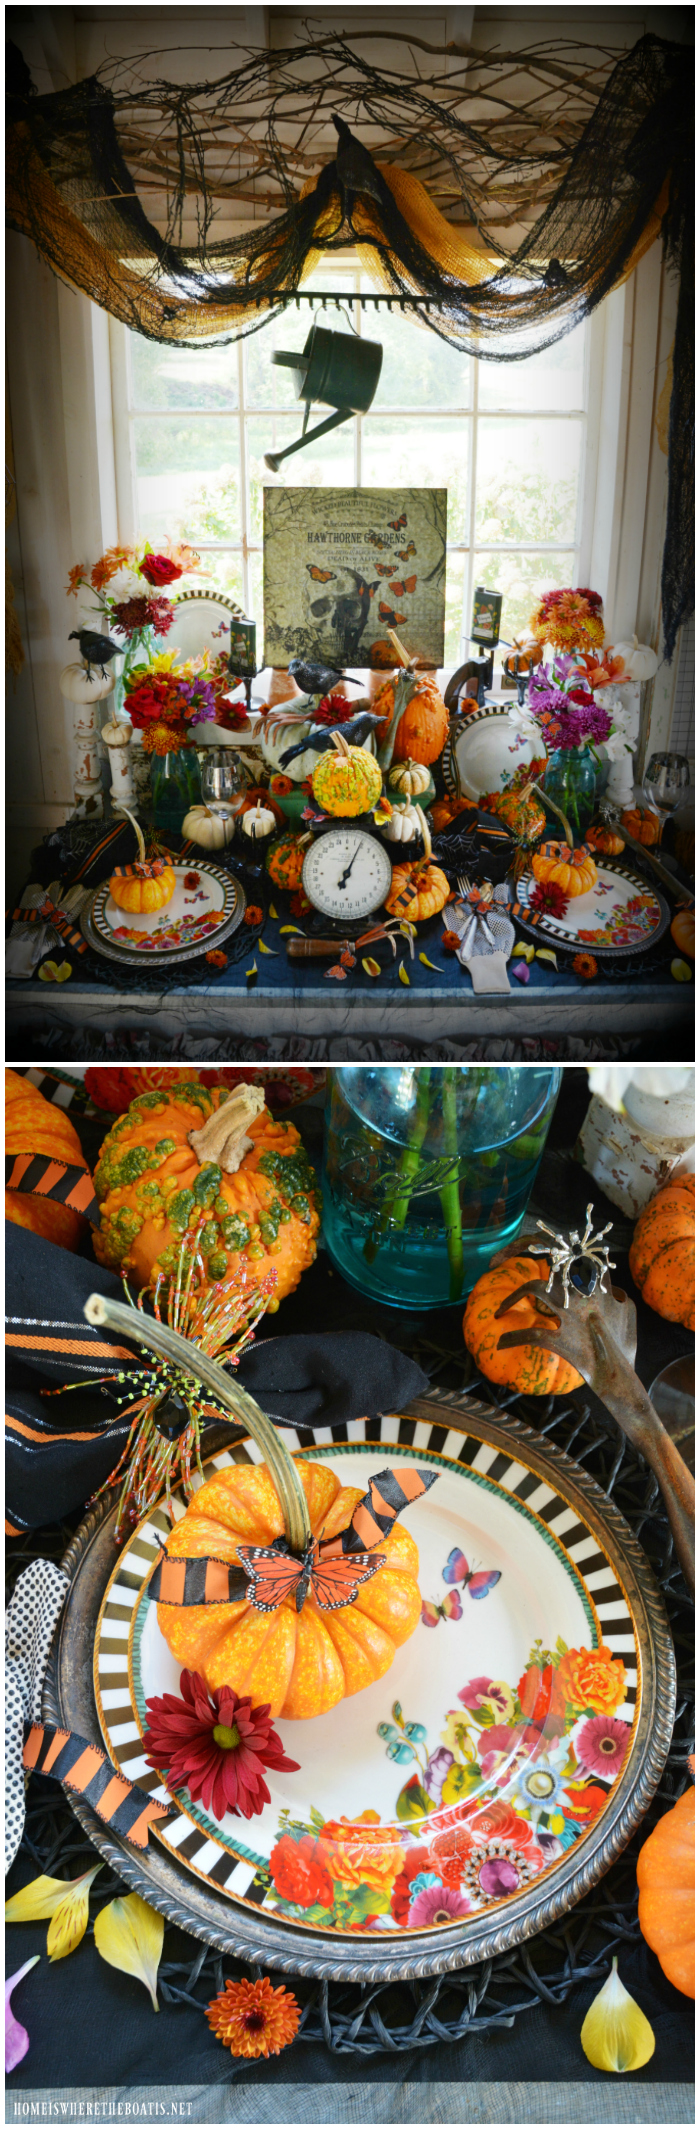 Hawthorne Gardens Wicked Beautiful Flowers | ©homeiswheretheboatis.net #Halloween #tablescape #tablesetting #pottingshed